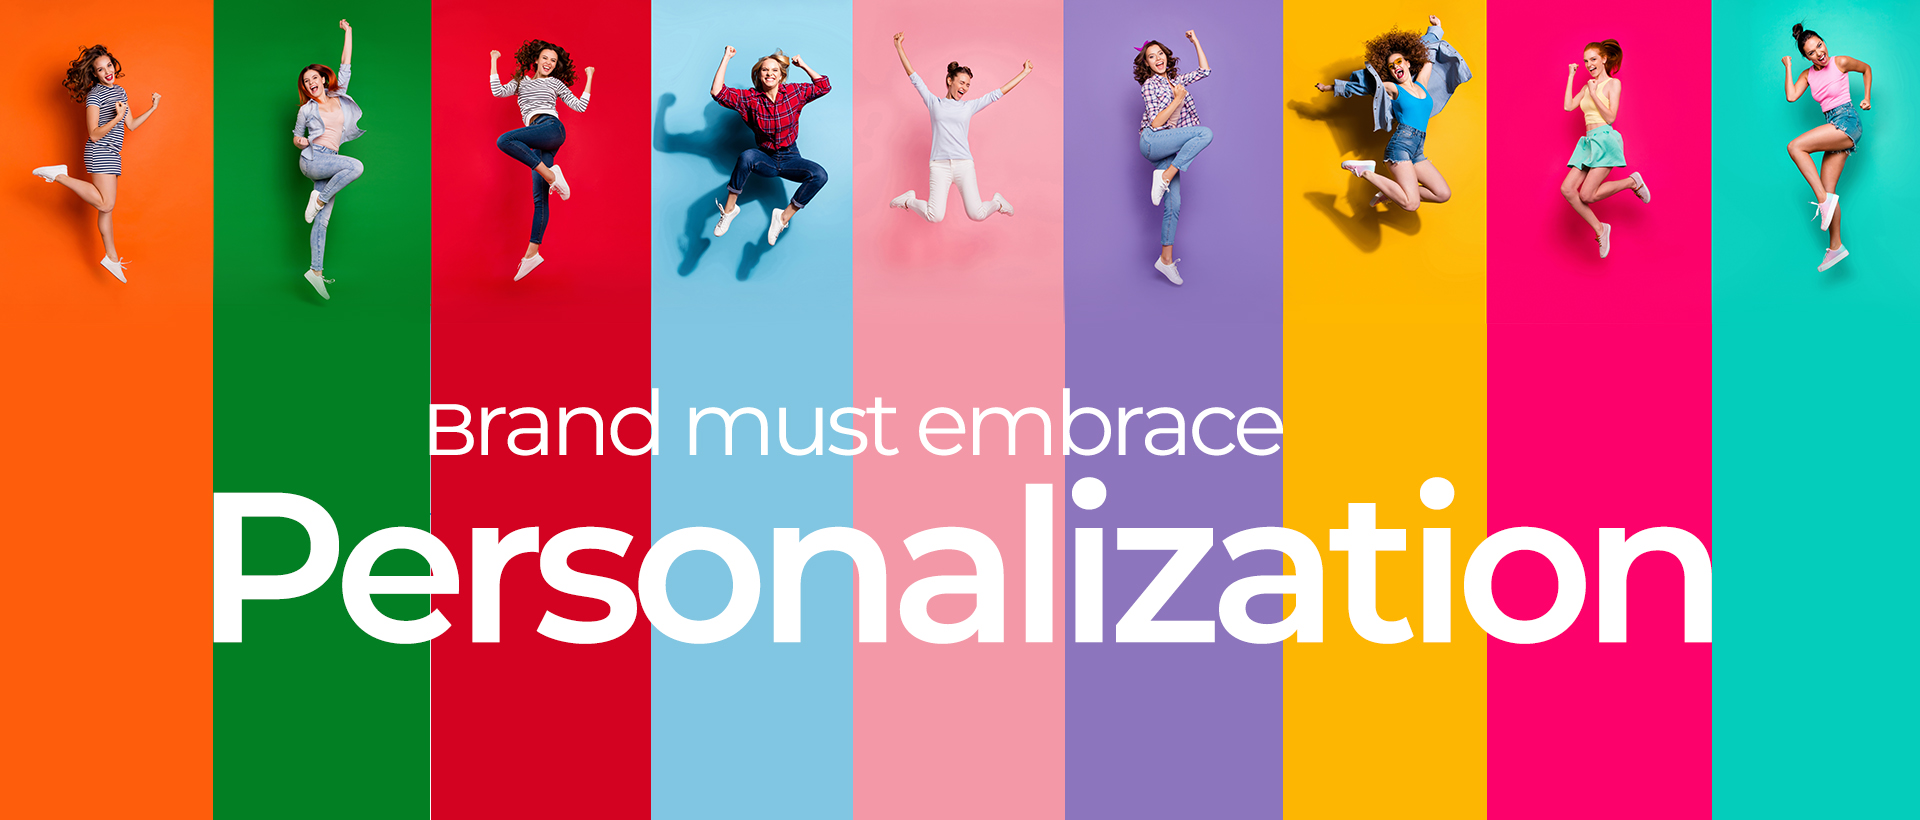 Why brands must embrace personalization